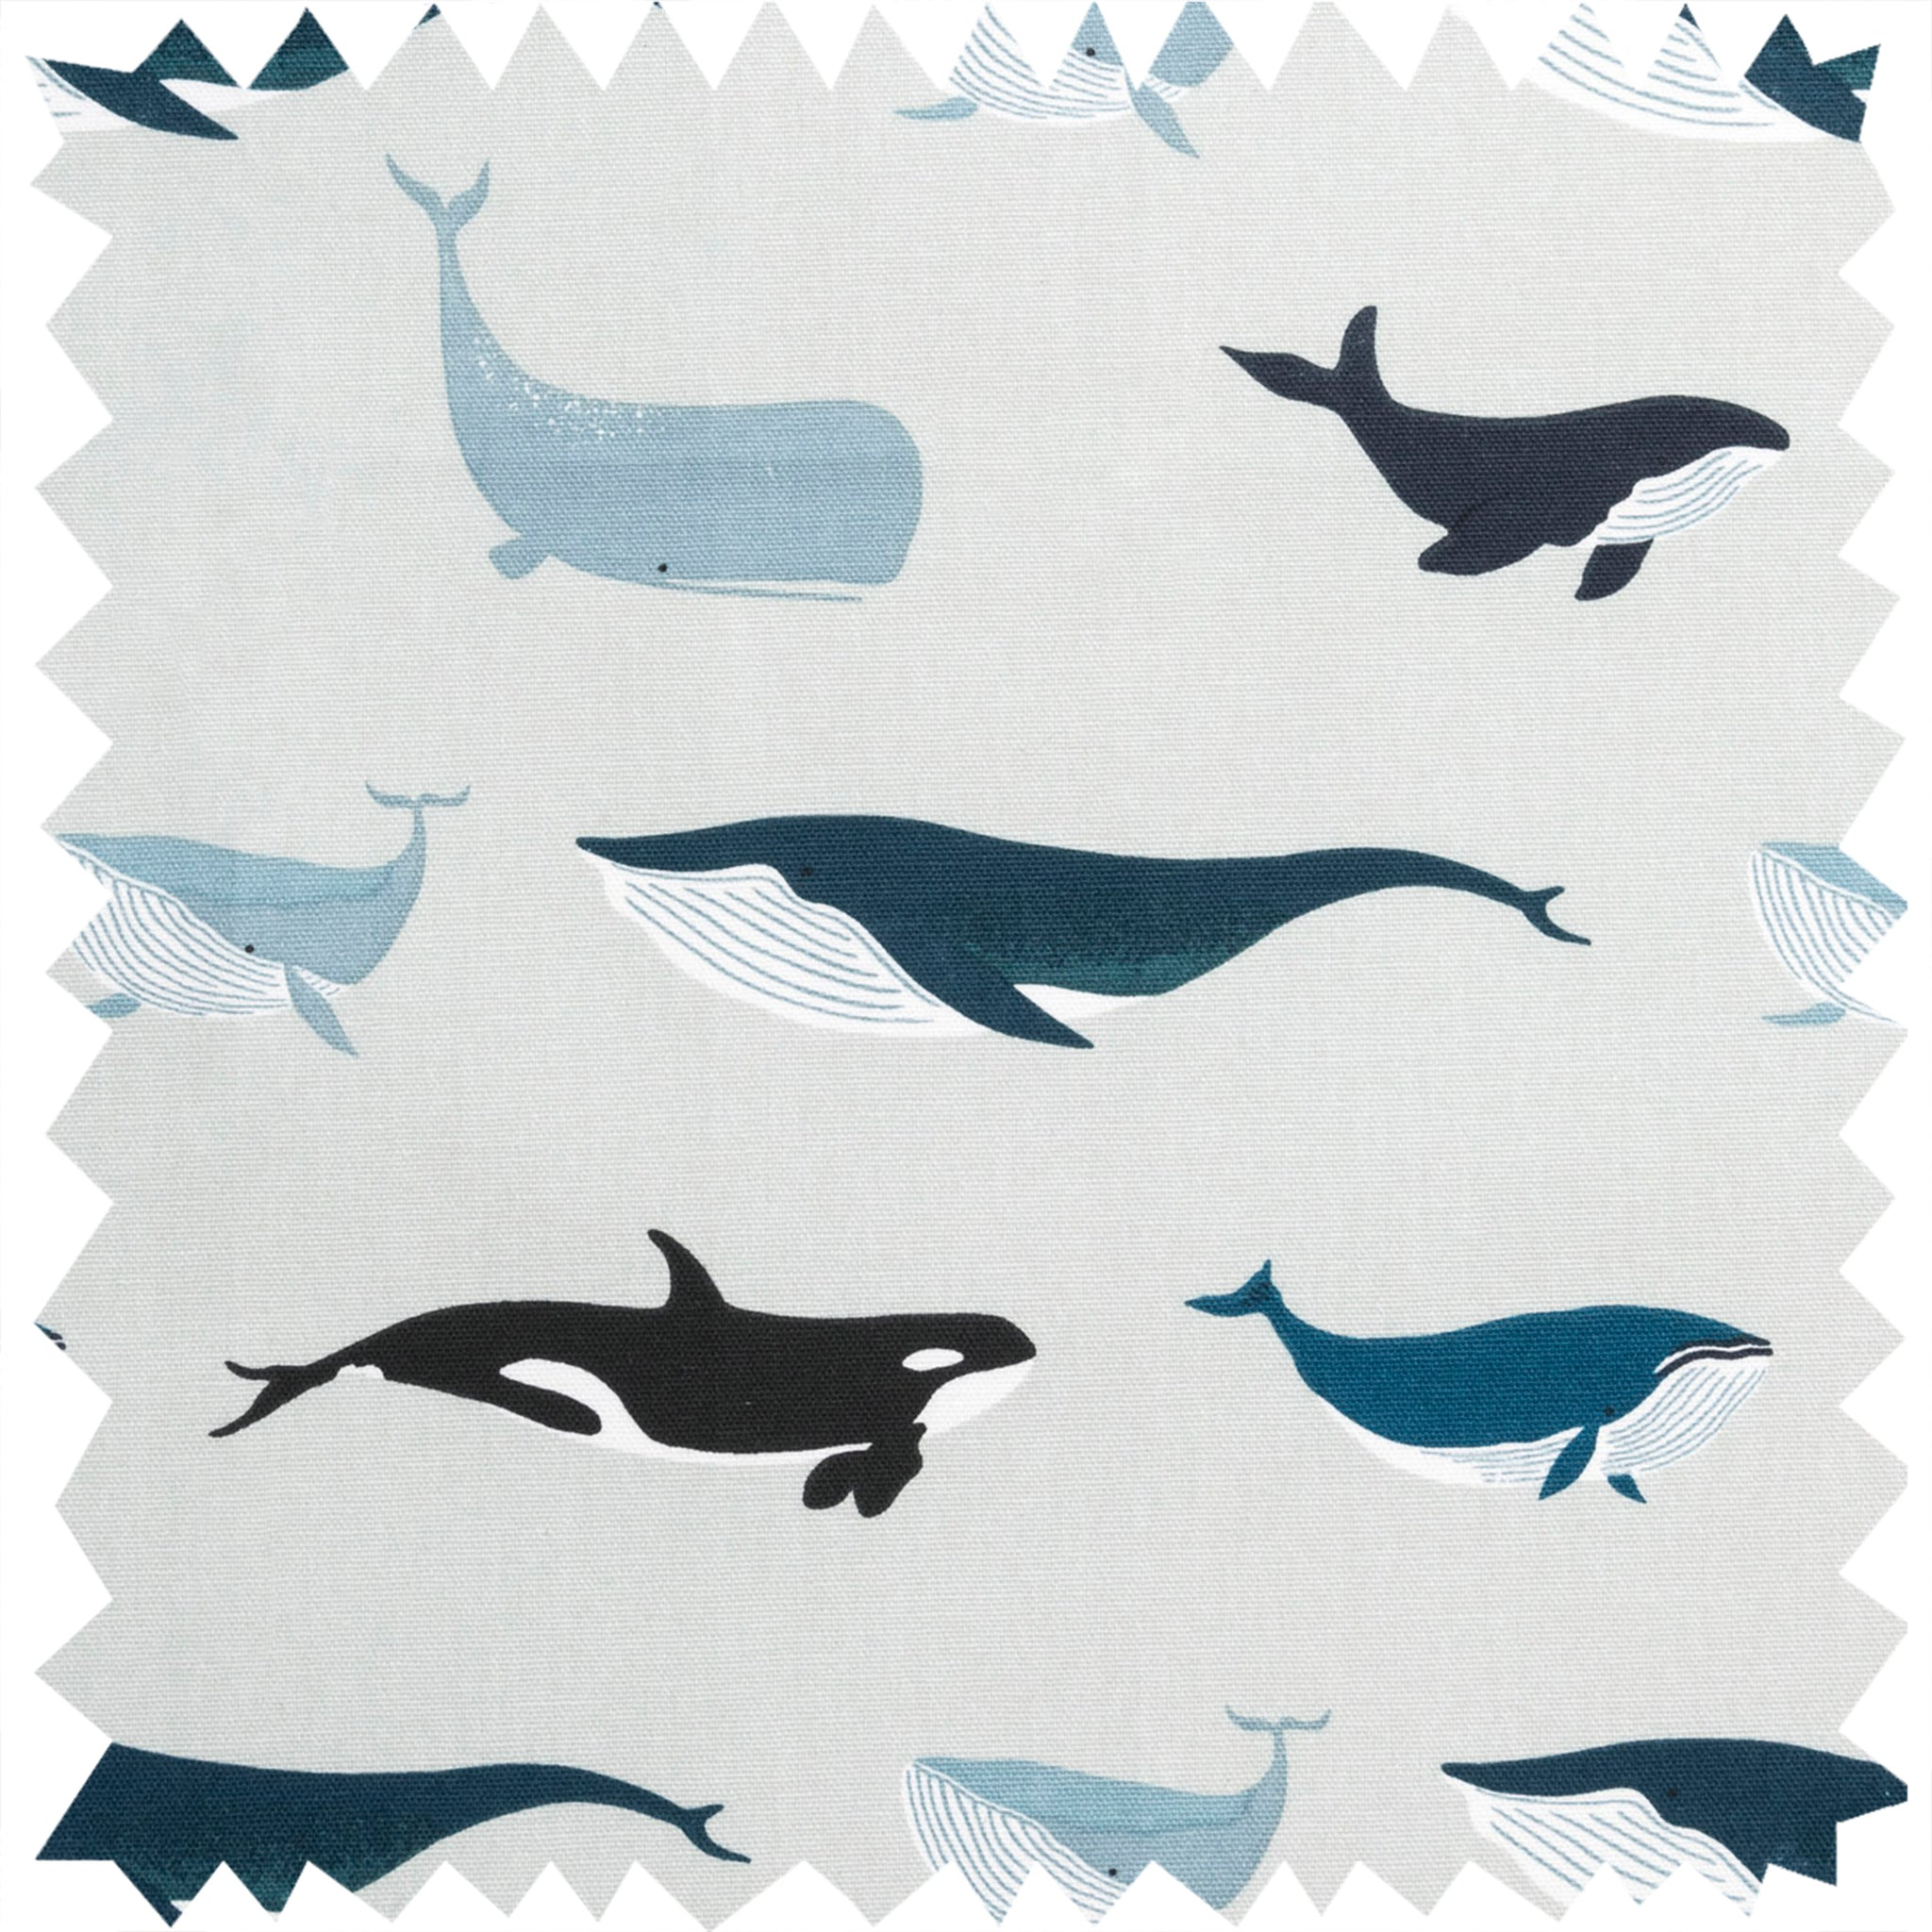 Whales Fabric by the Metre by Sophie Allport